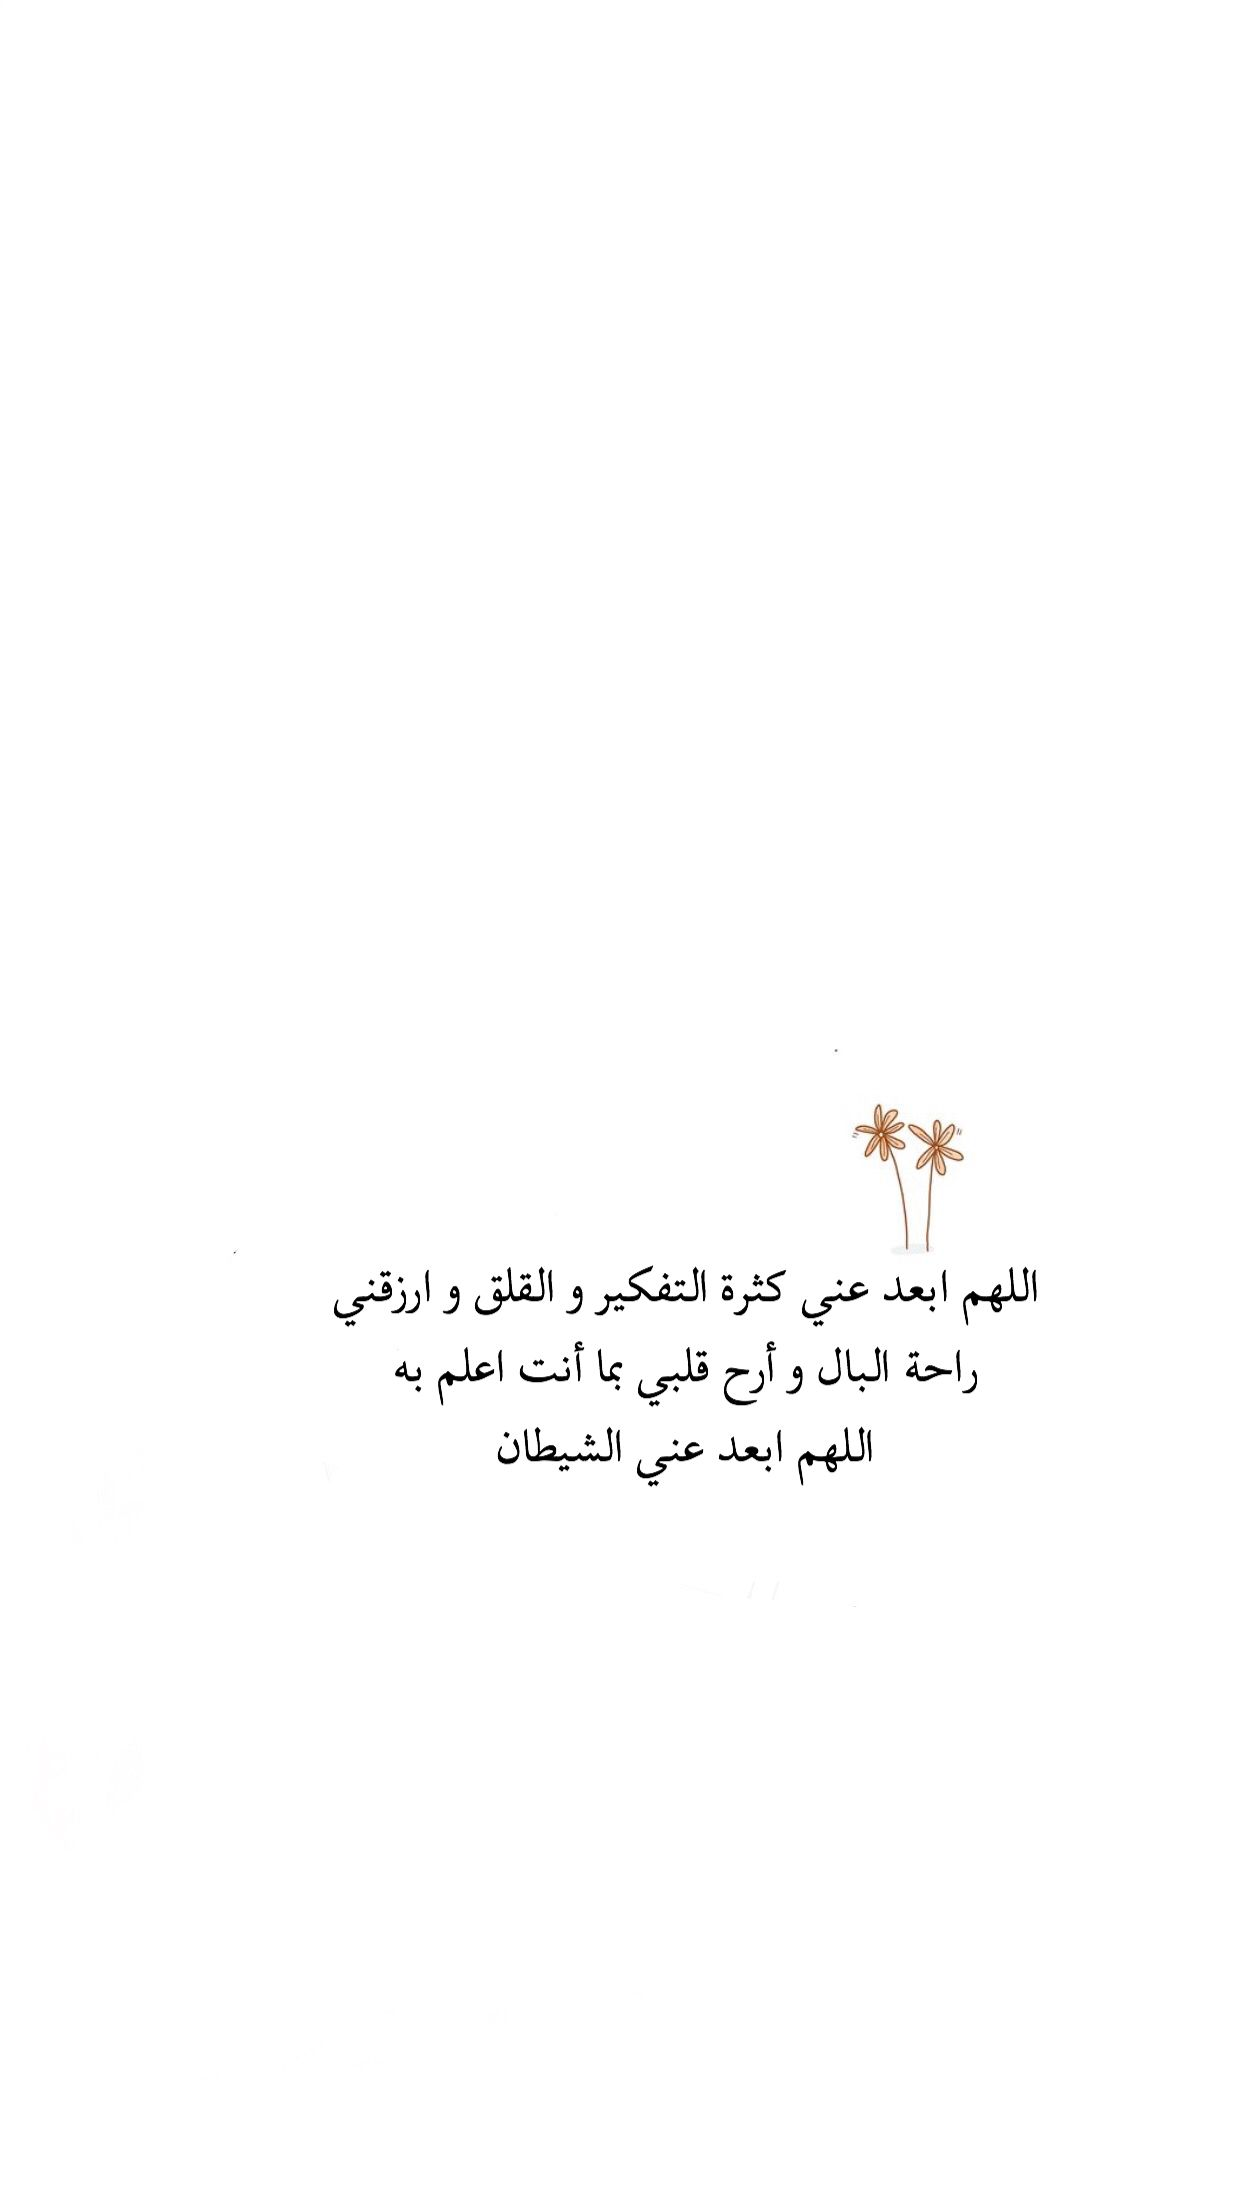 Pin By سحابة خي ر On تتننا Quran Quotes Islamic Quotes Arabic Love Quotes